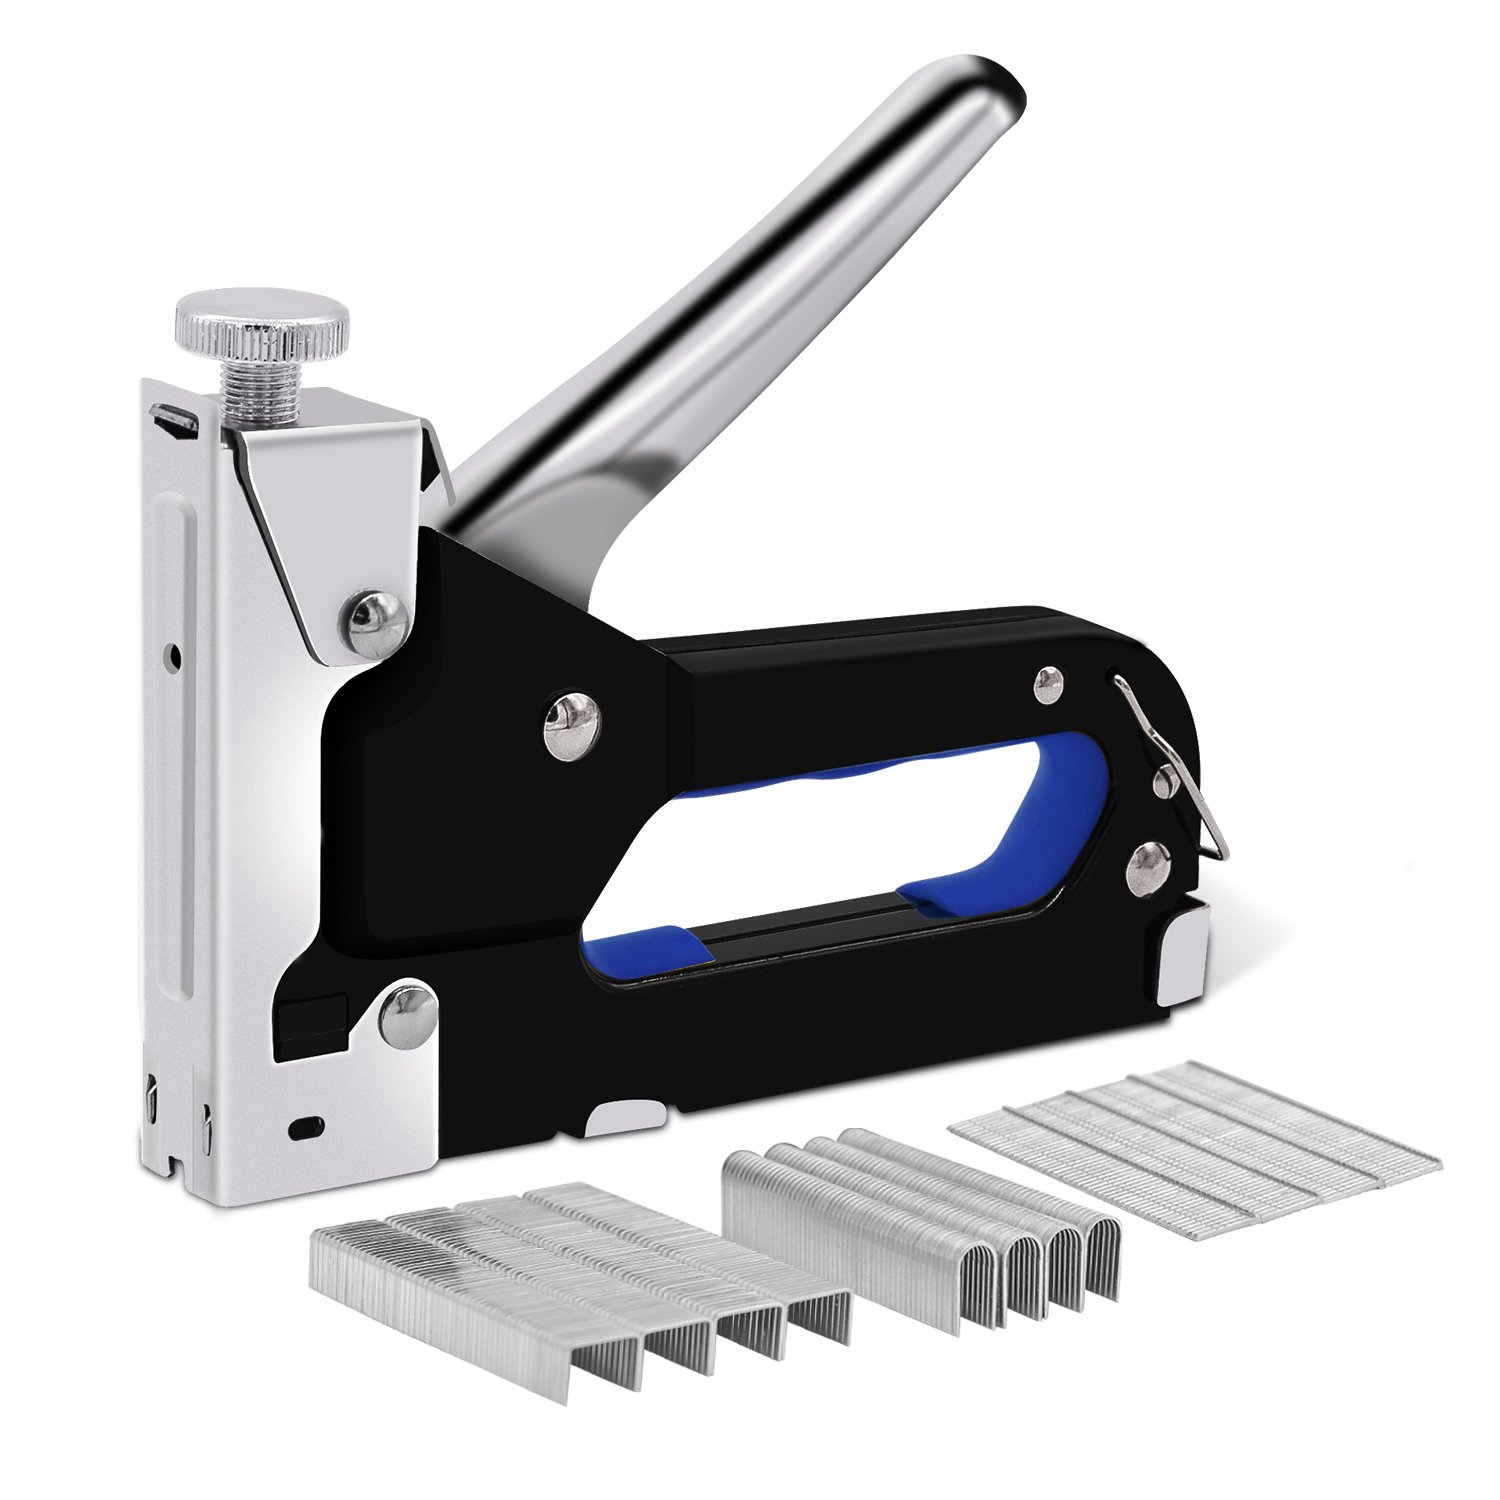 3 in 1 Staple Gun, Manual Heavy Duty Nail Gun, Tool for Fixing Material, Decoration, Carpentry, Furniture, Doors and Windows, Billboards